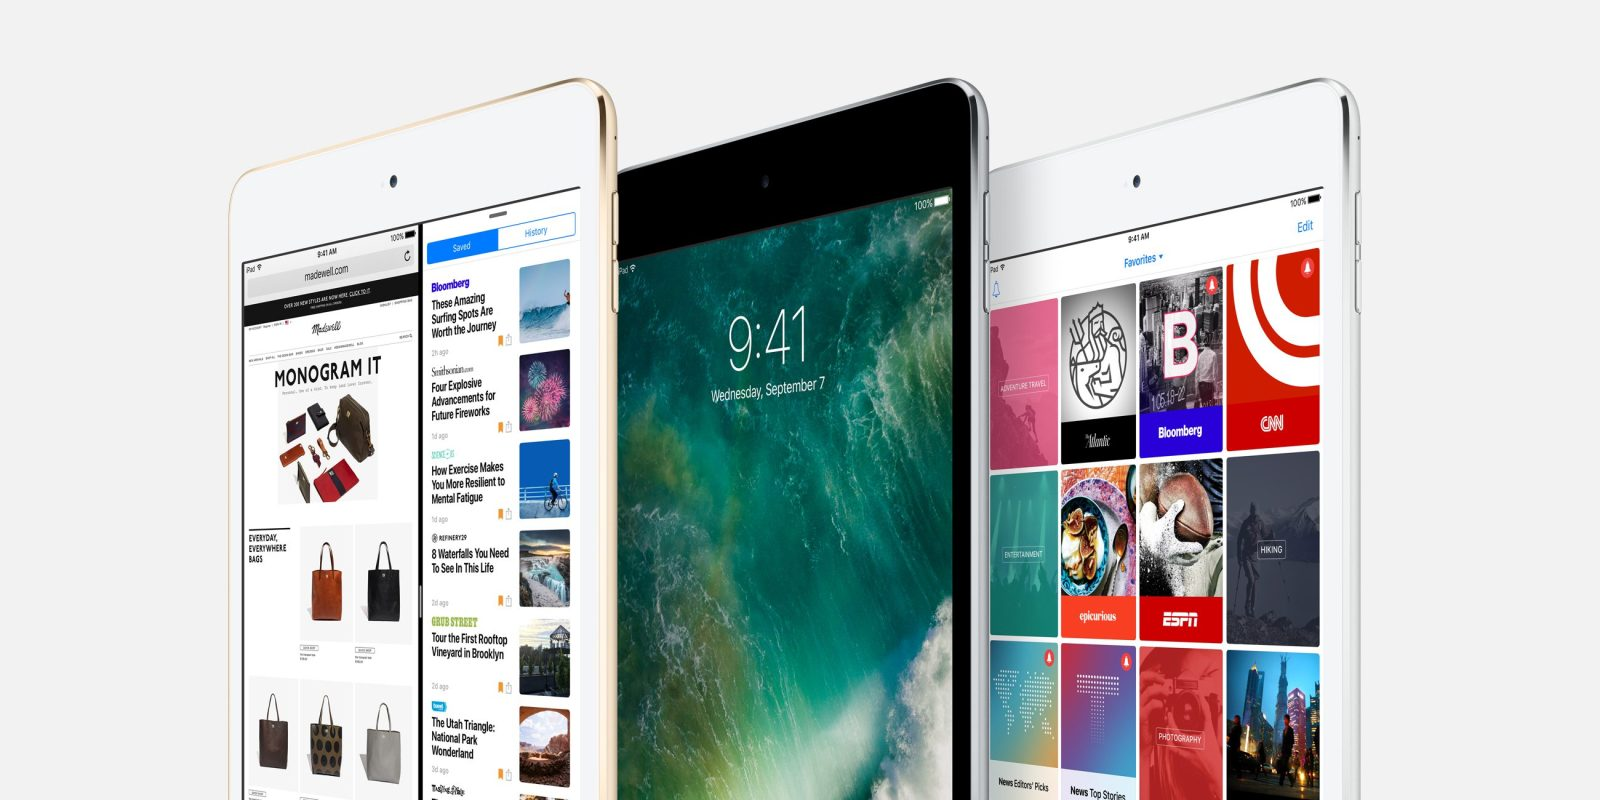 Apple iPad mini 4 is down to $275 in all colors if you missed yesterday's deal